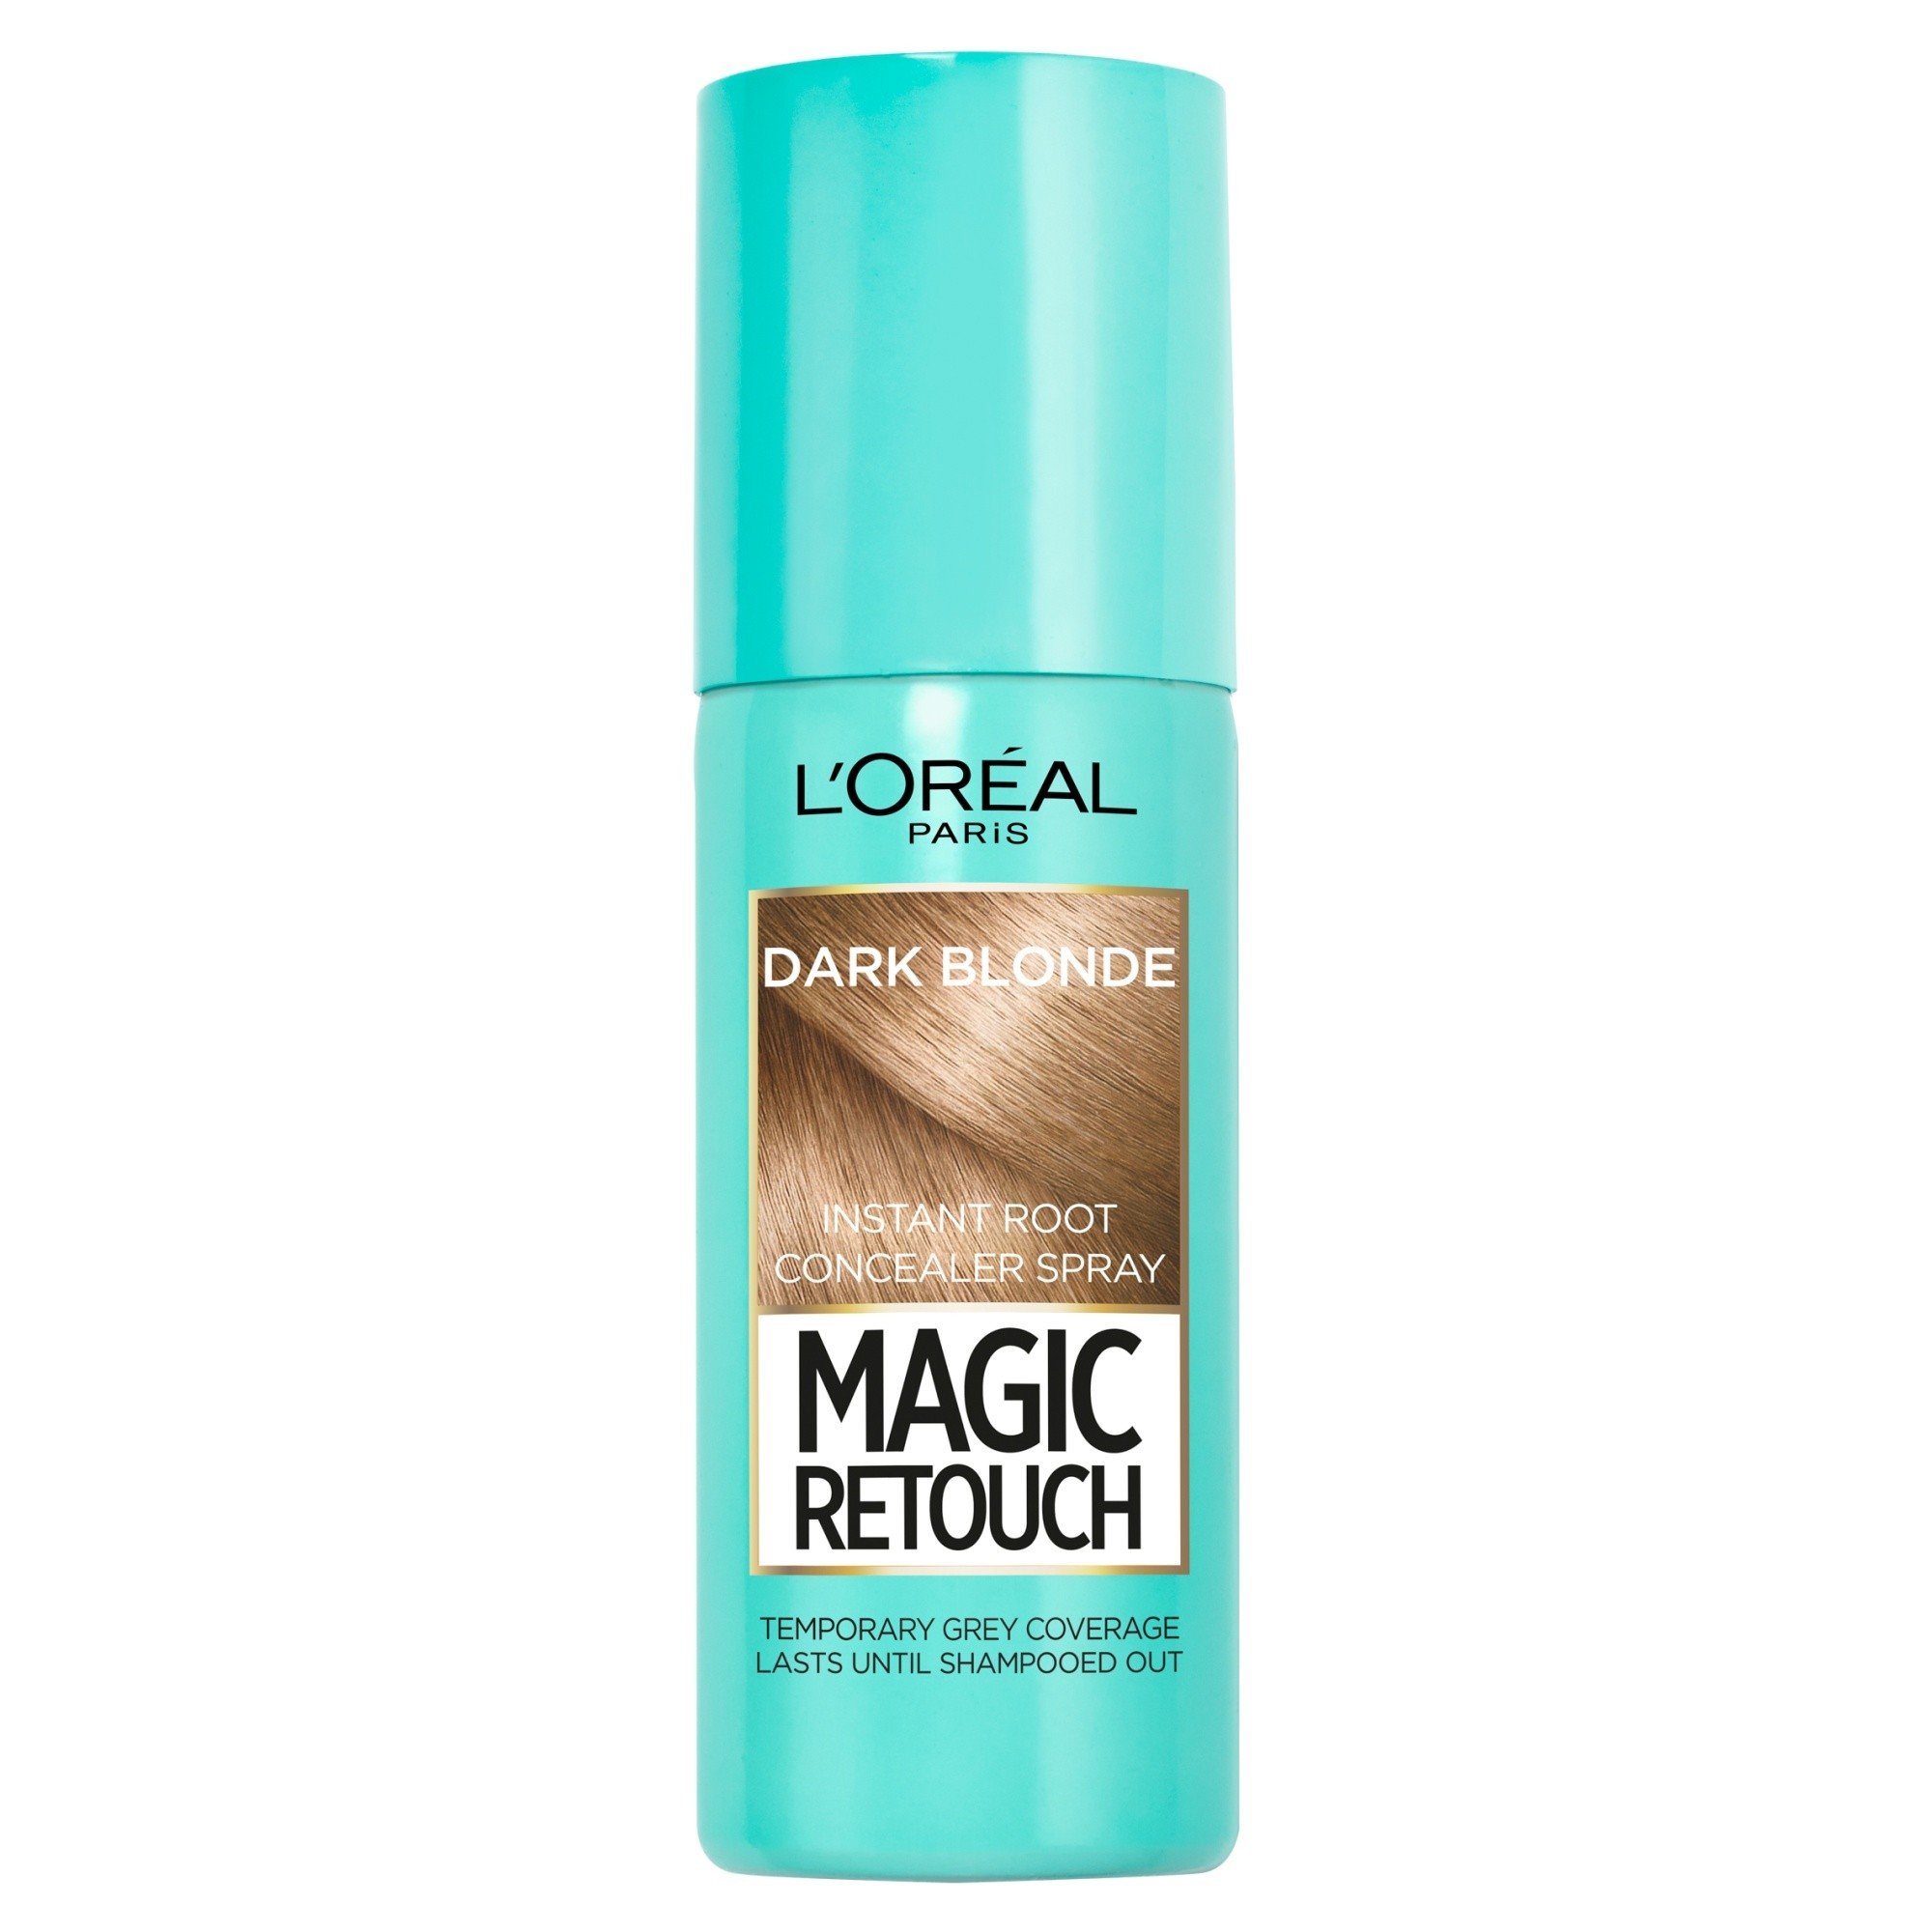 L'Oreal Paris Magic Retouch Instant Root Touch Up Dark Blonde